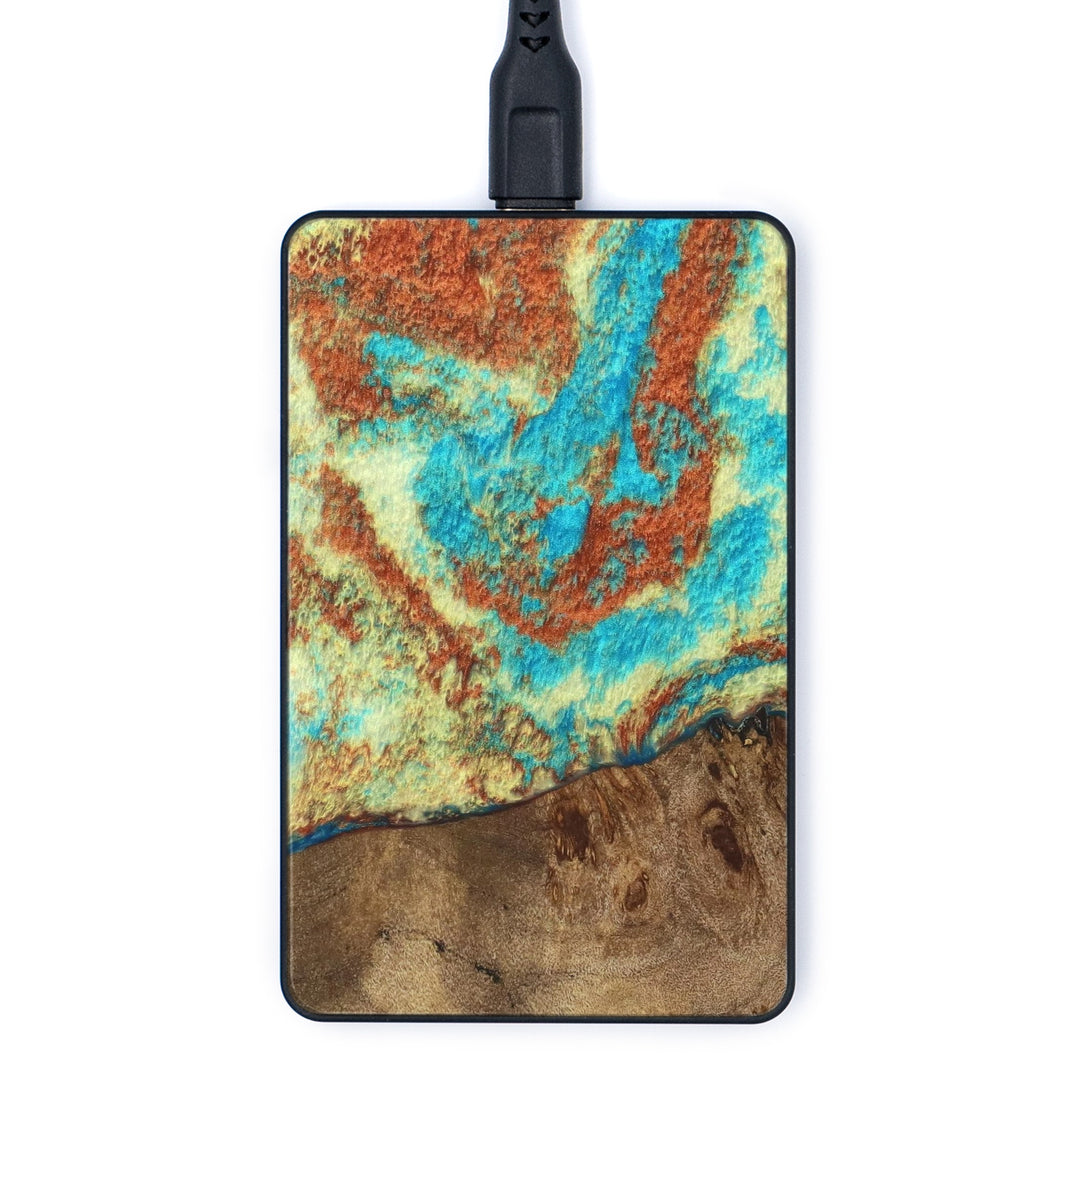 Thin Wireless Charger - Jillian (Teal & Gold, 334620)